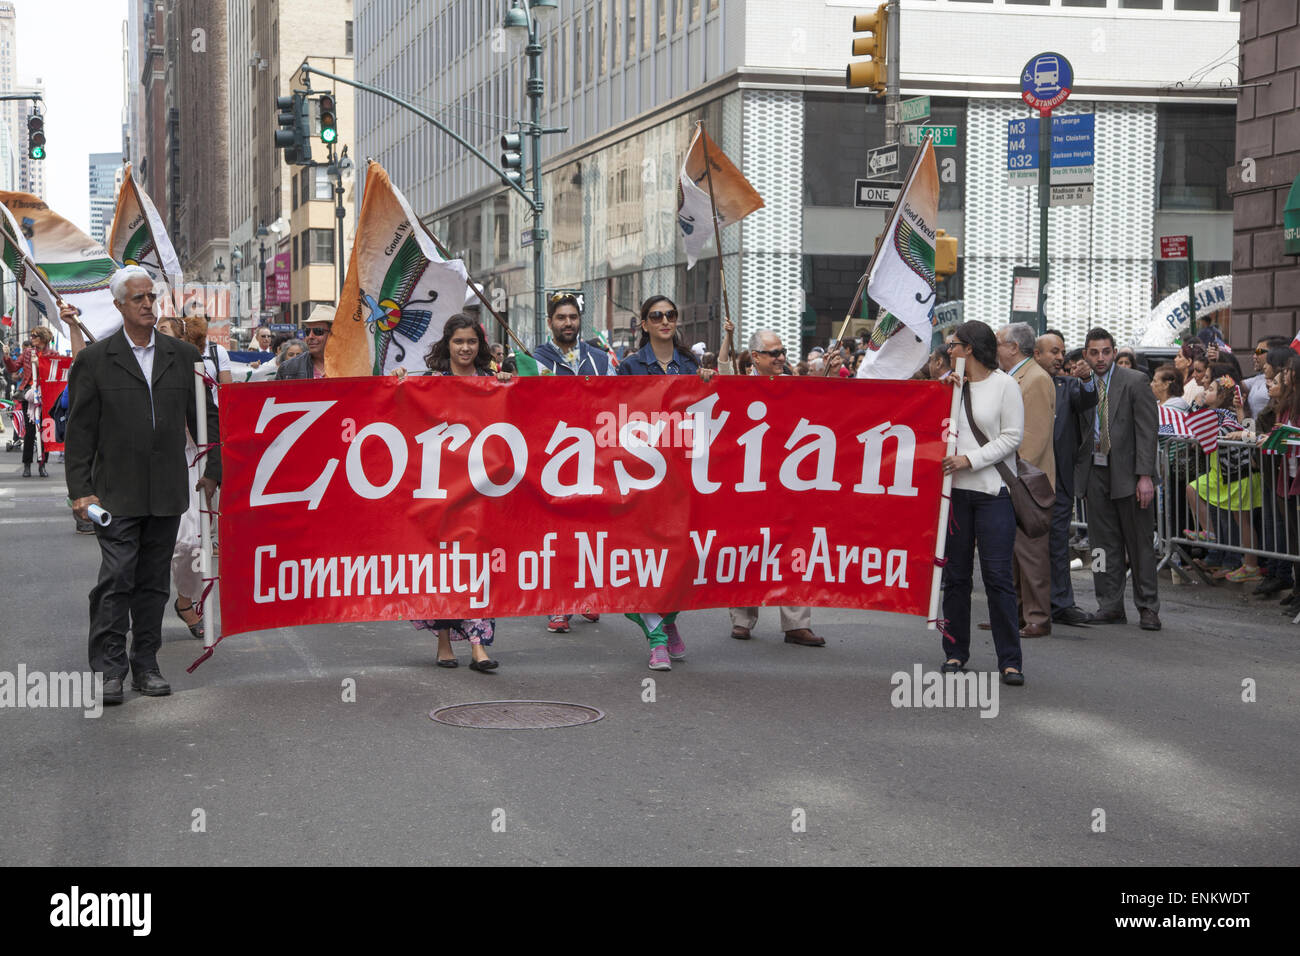 The annual Persian Parade on Madison Avenue in NYC celebrates Nowruz, the new year marking the first day of spring. - Stock Image